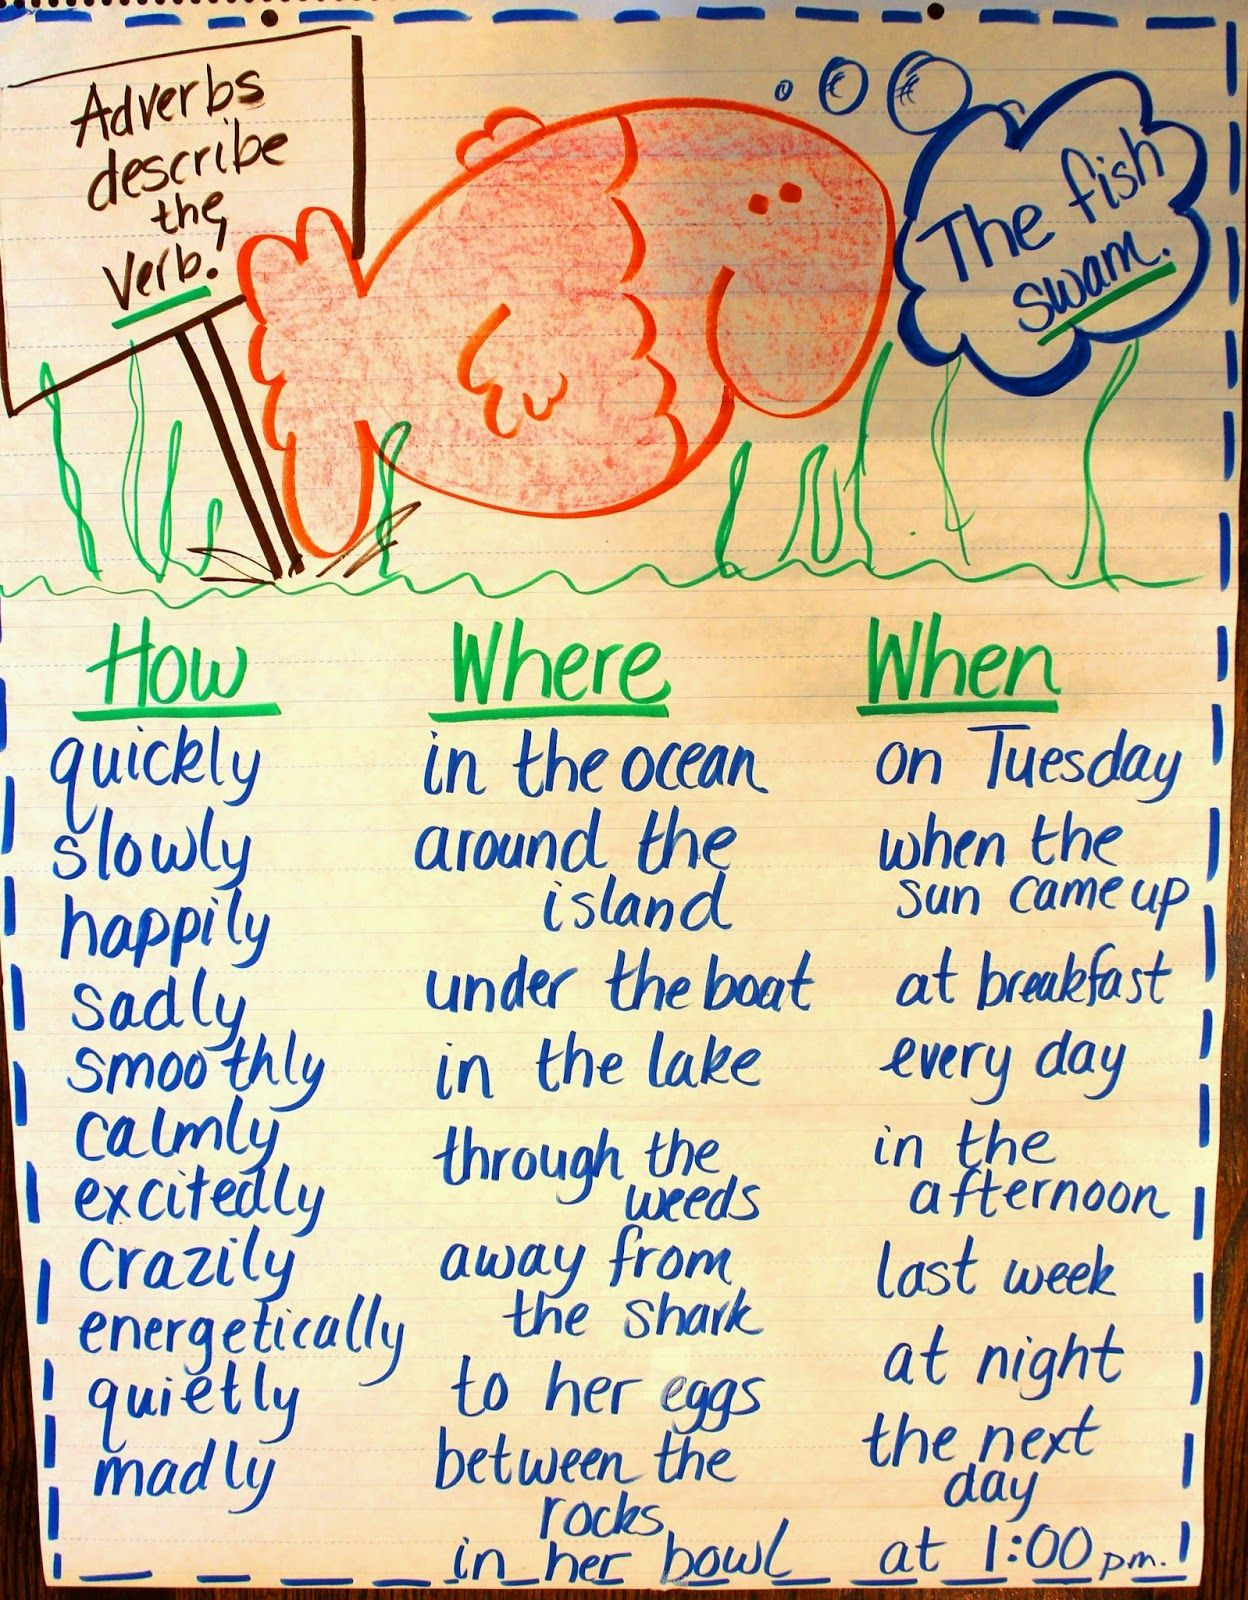 April Adverb Adventure First Grade Wow